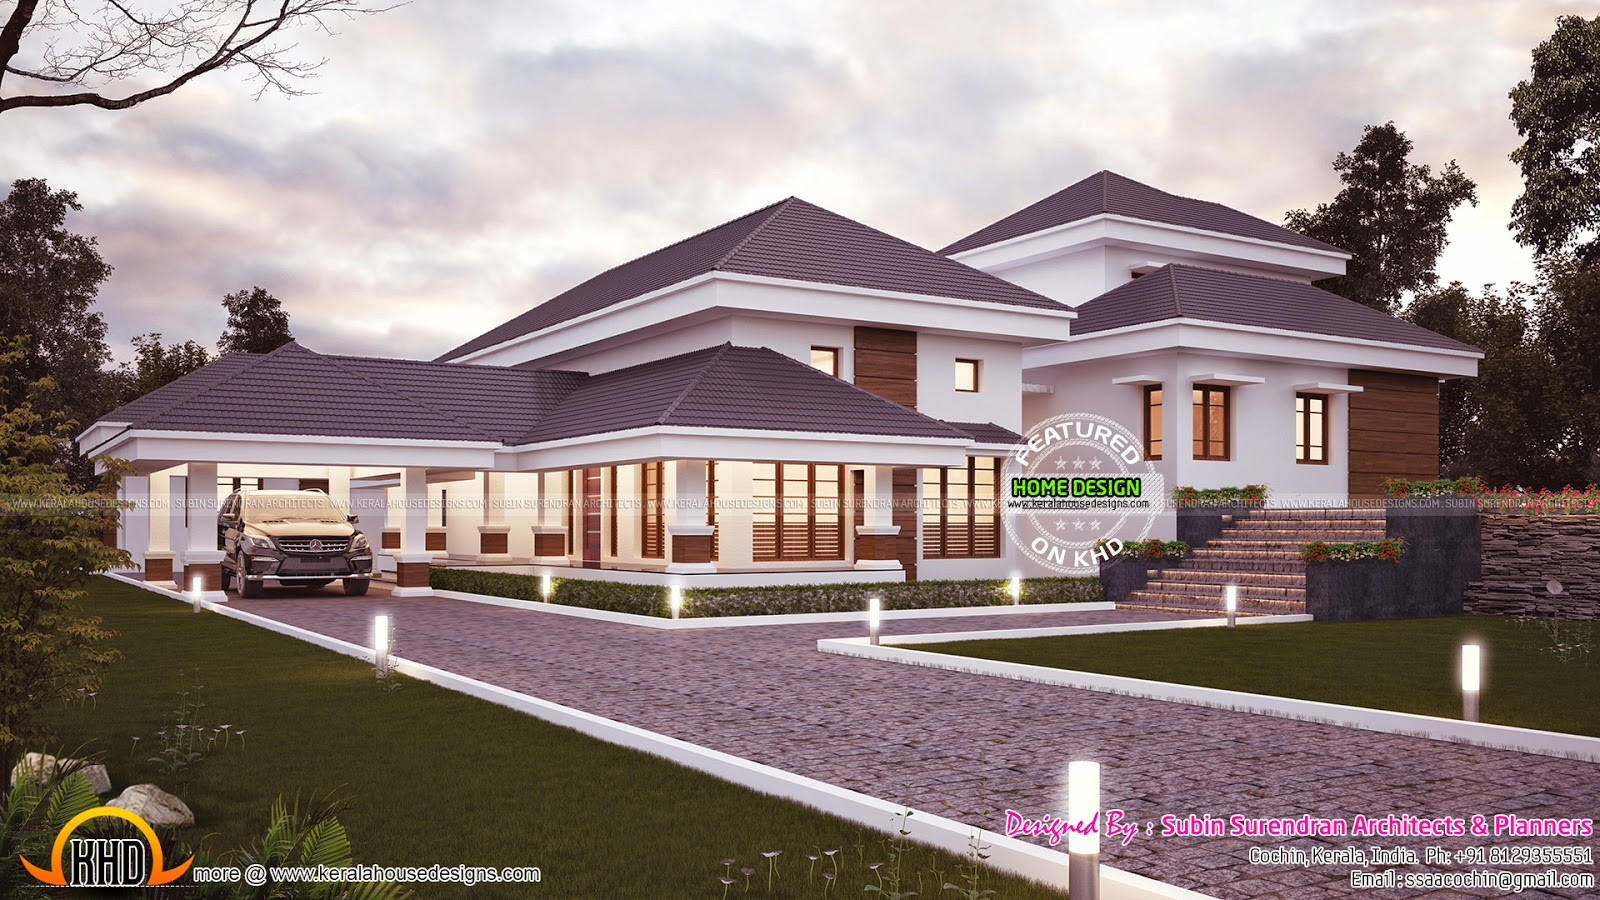 1000 images about magnificent houses which i admire on for Contemporary house in kerala